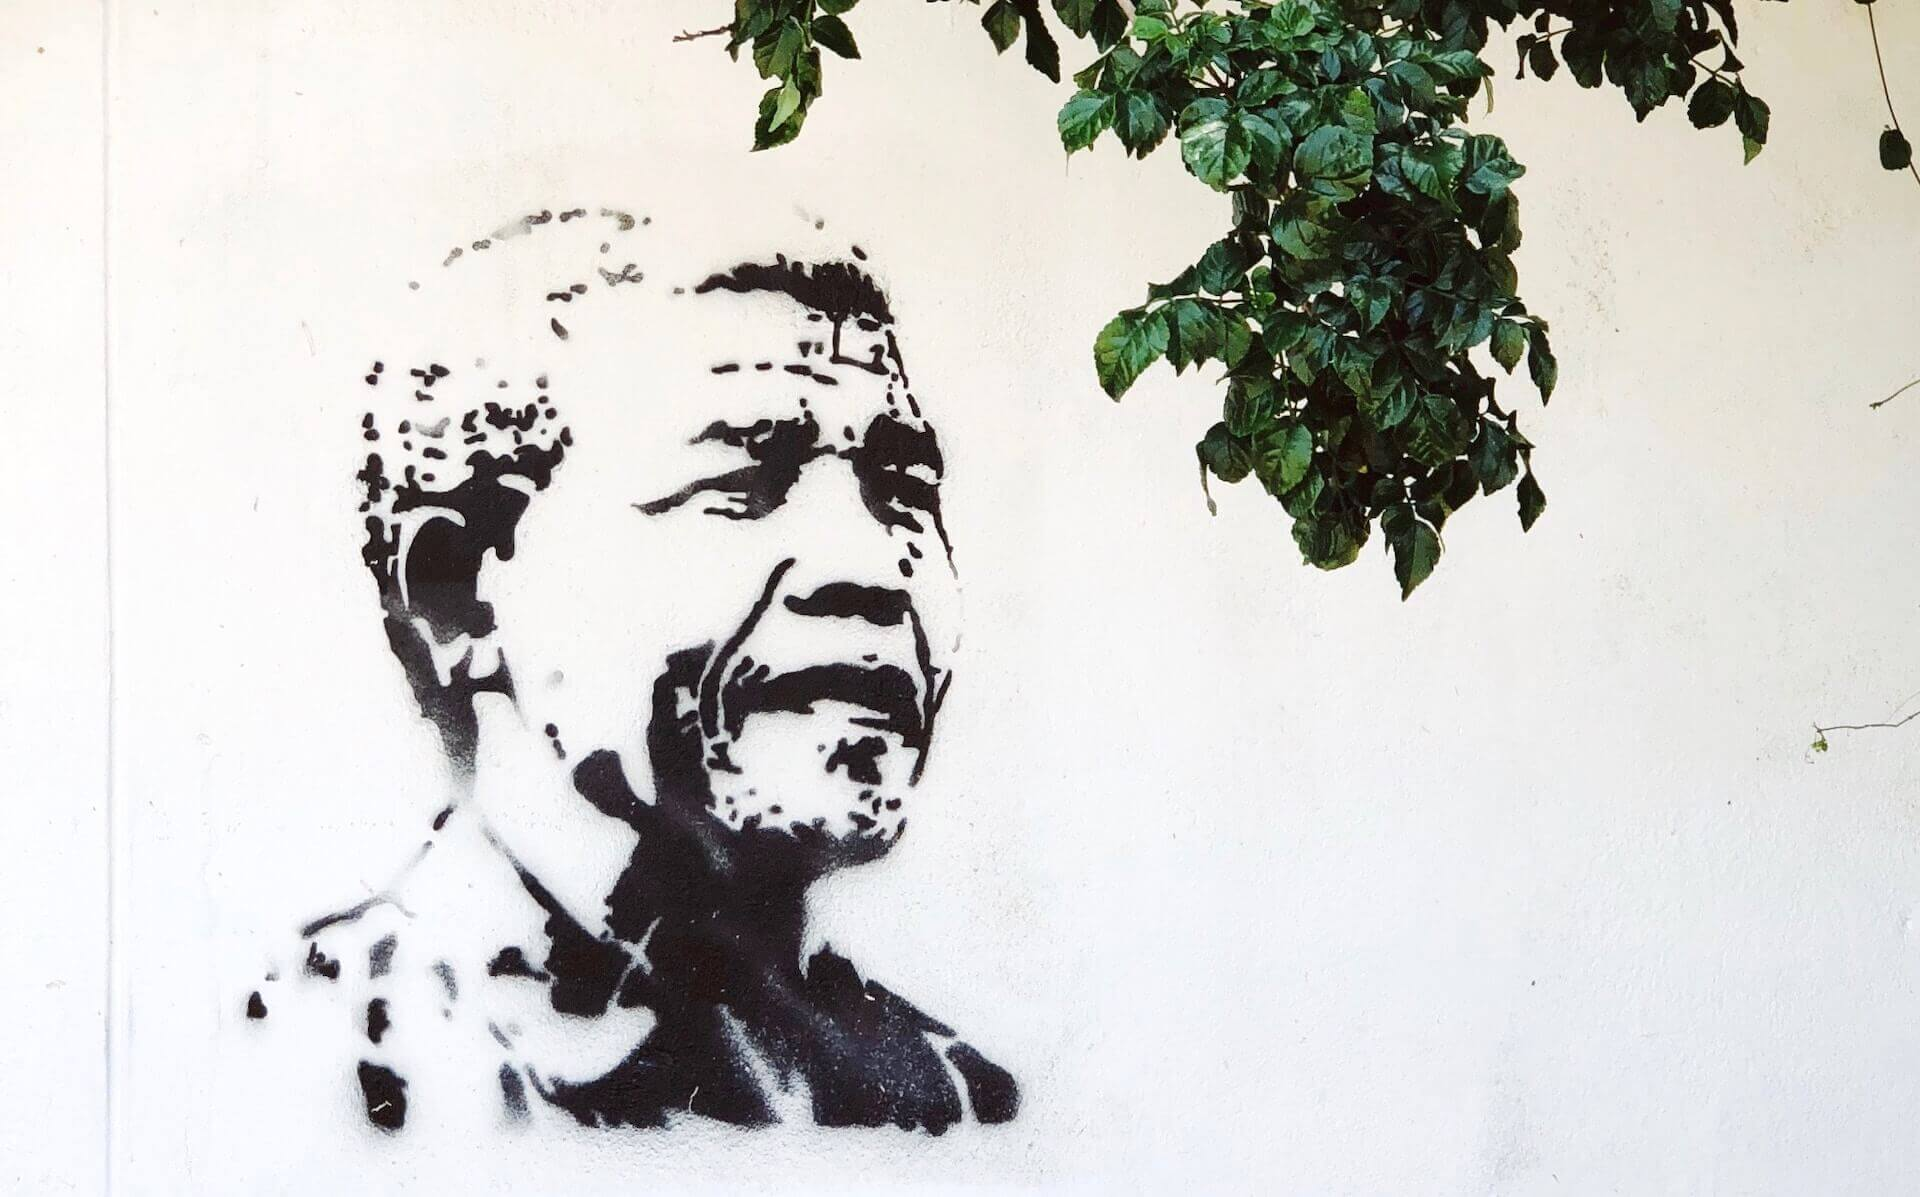 46 Inspirational Nelson Mandela Quotes That Will Change Your Life